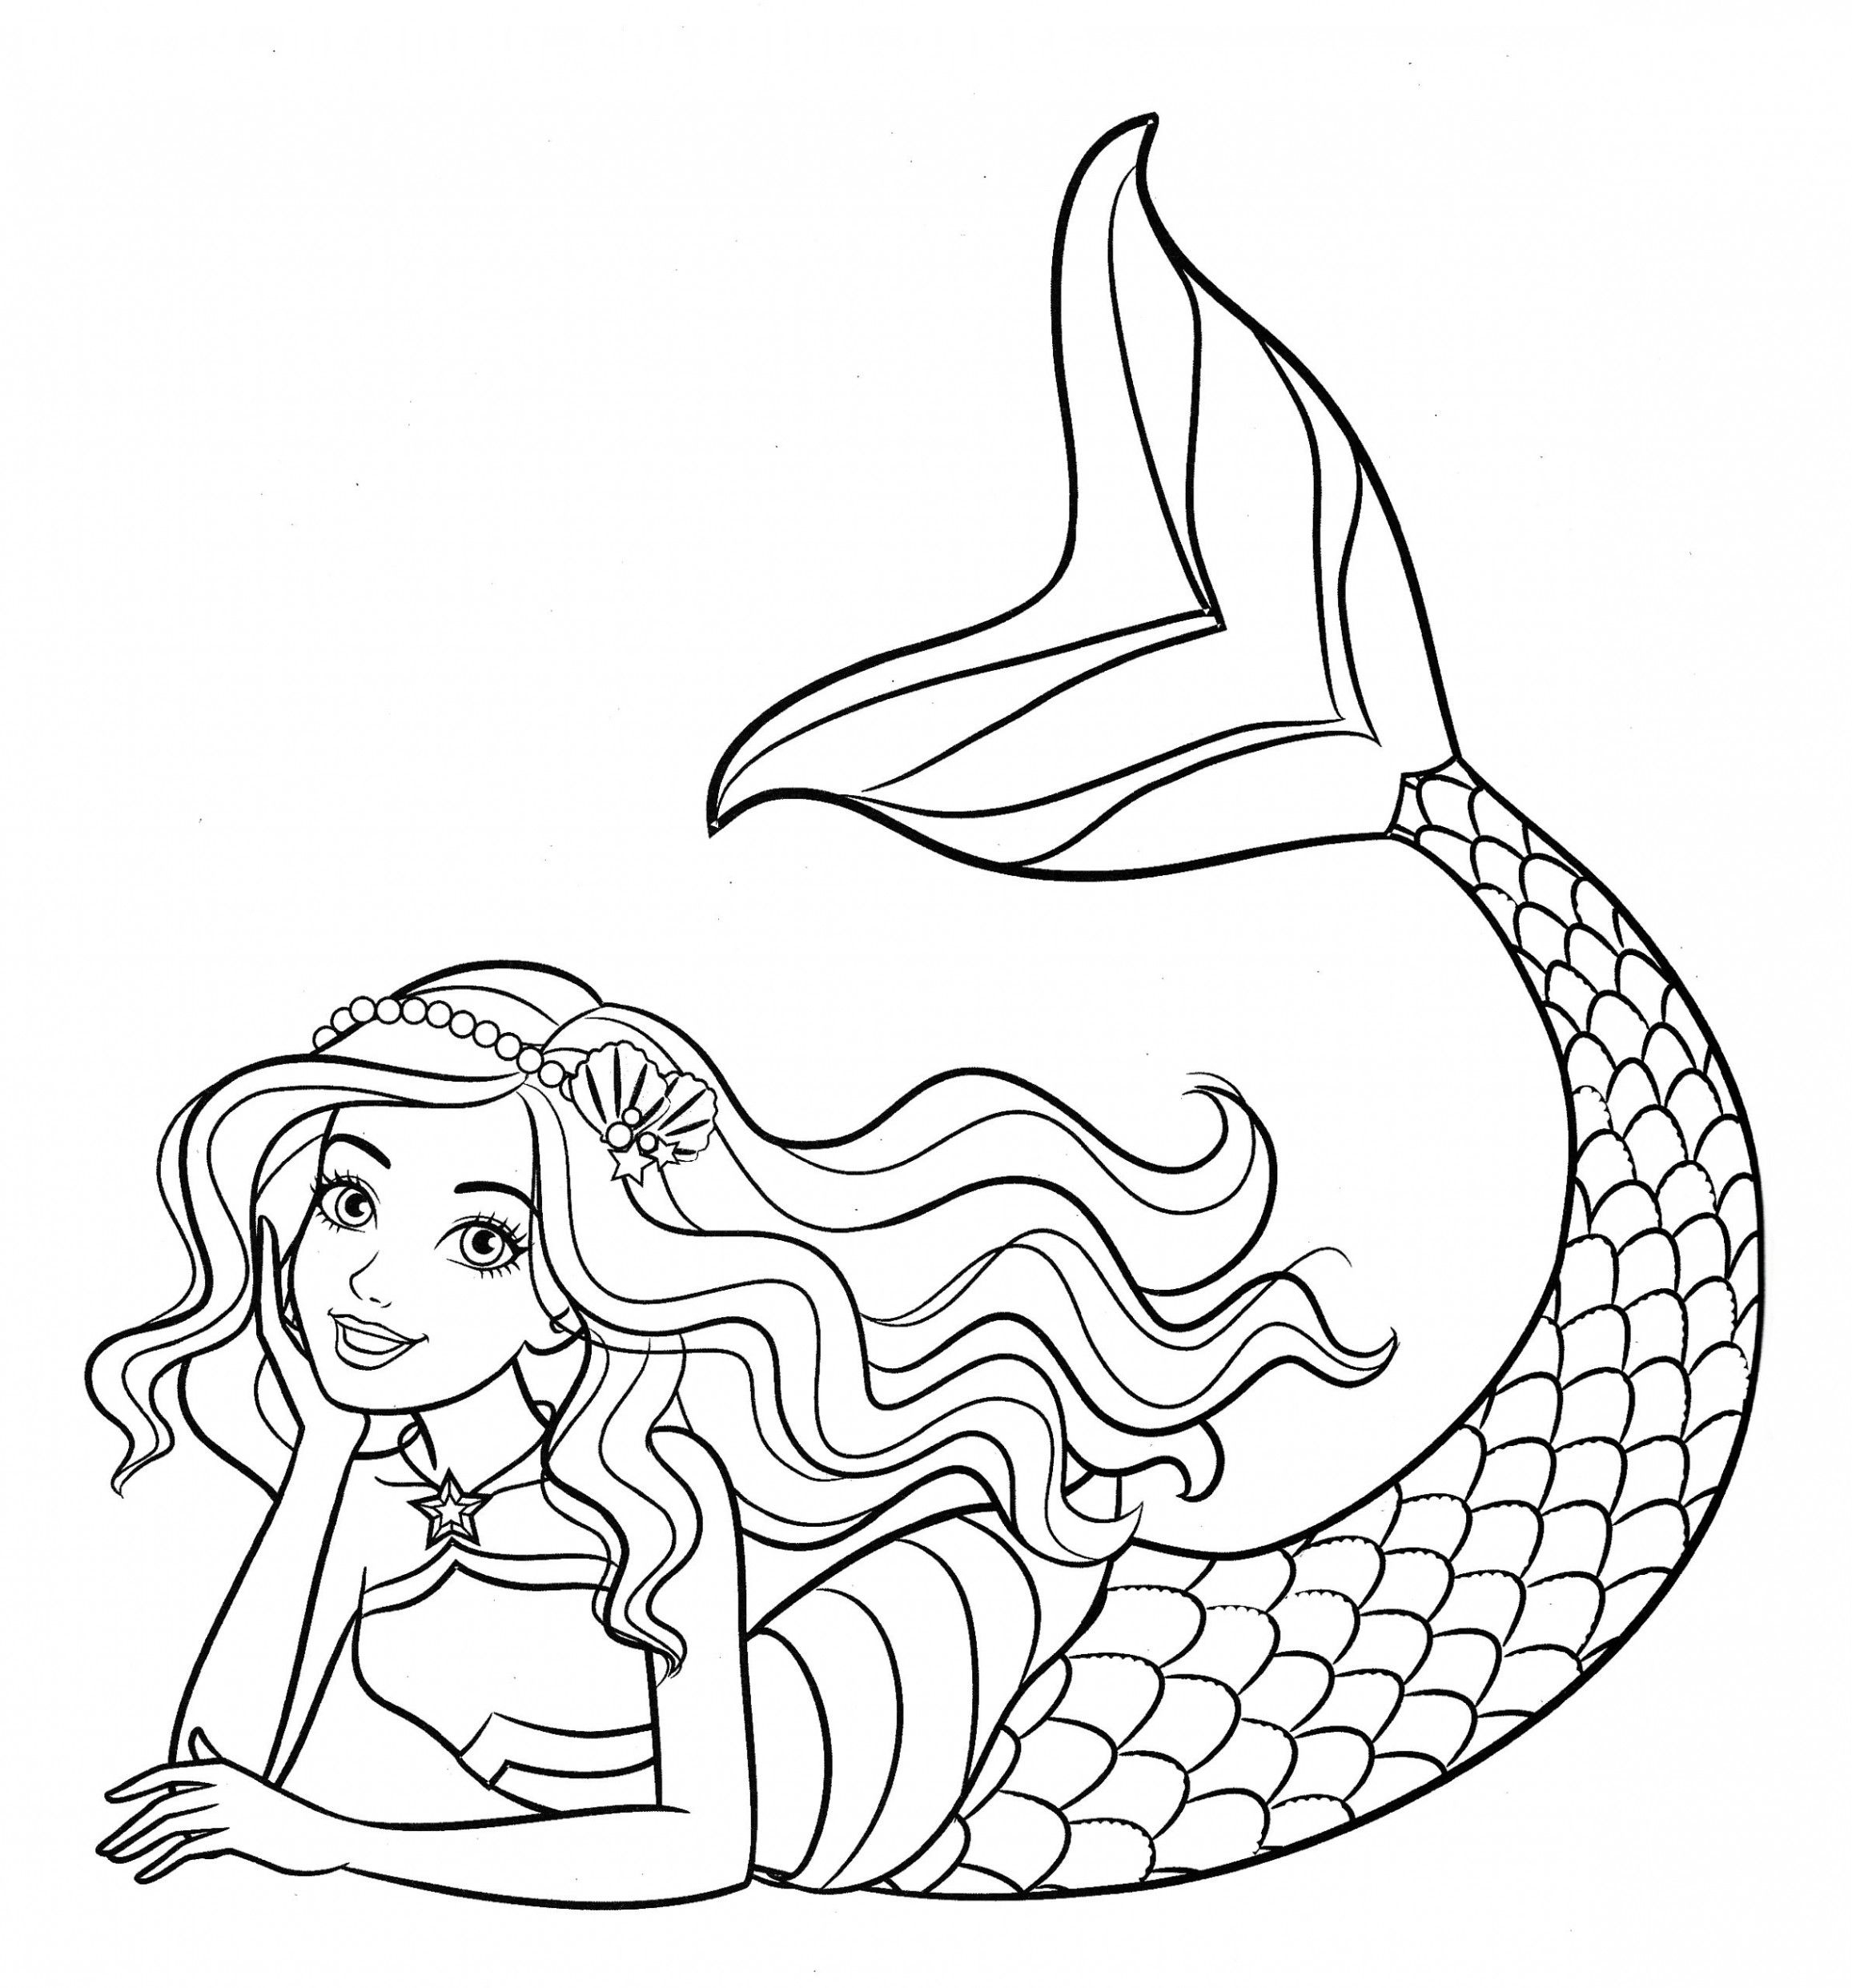 Cute Dolphins Coloring With Mermaids Coloring - PeepsBurgh